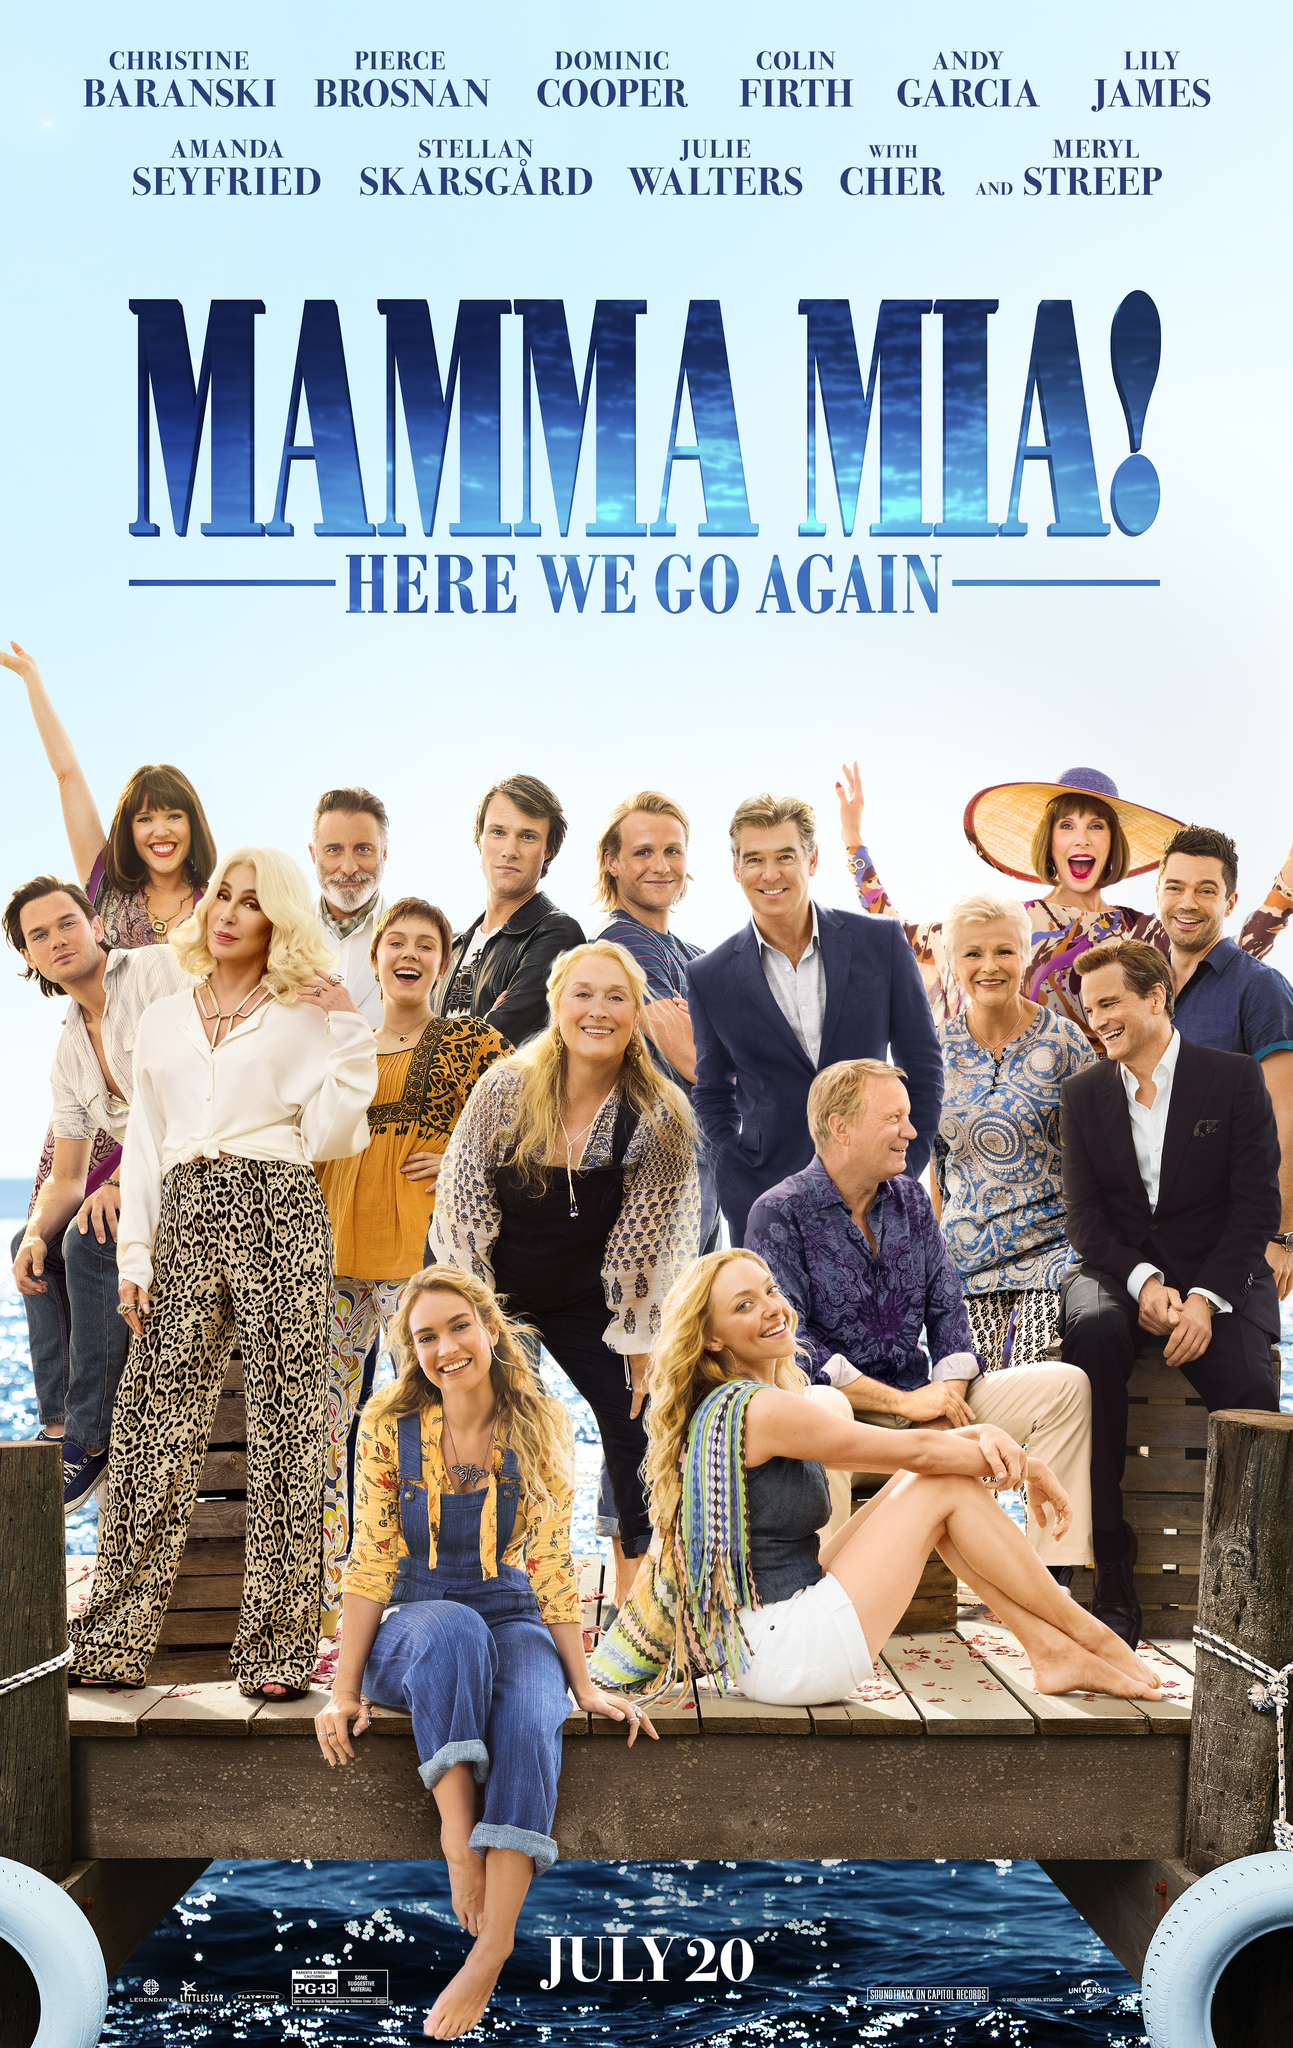 Image result for mamma mia here we go again movie poster